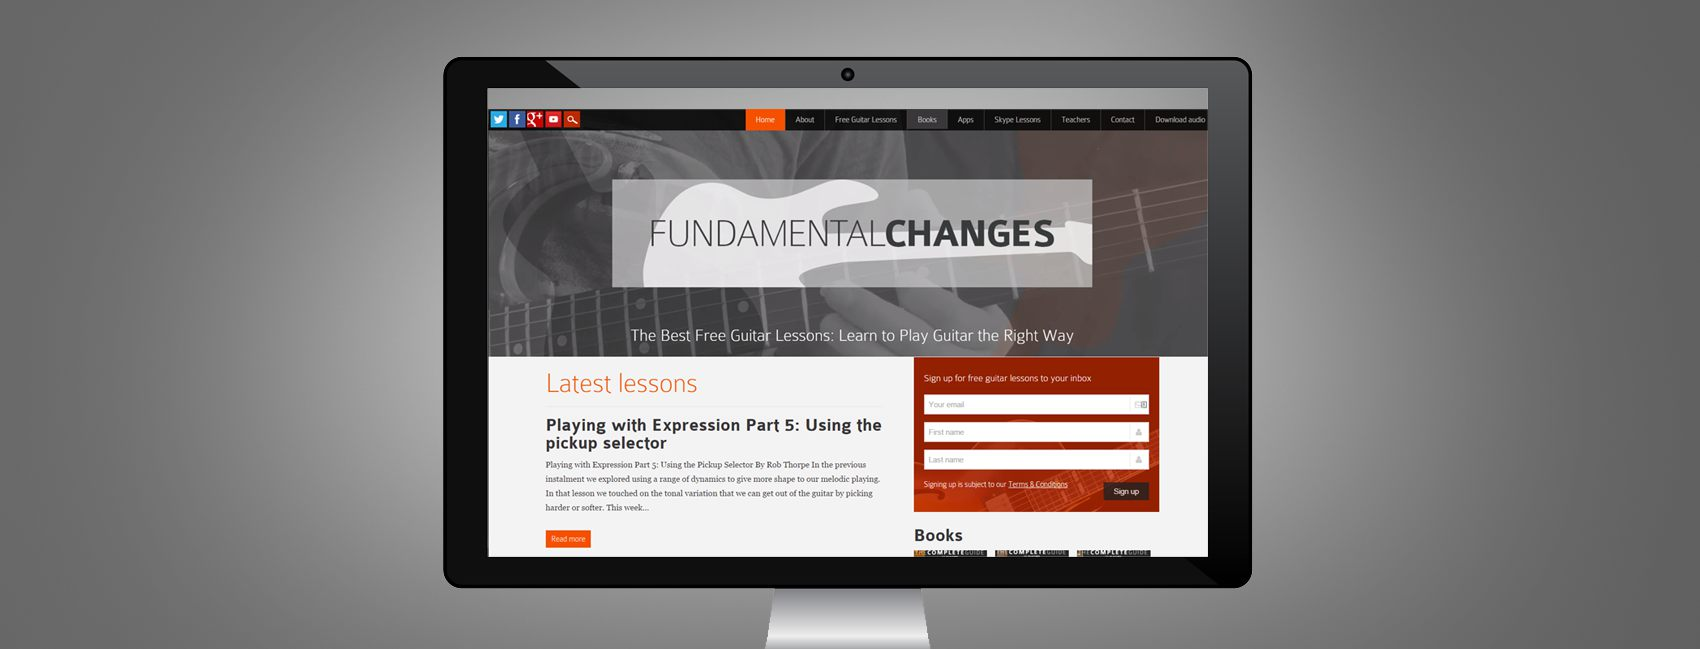 web design for fundamental changes screenshot